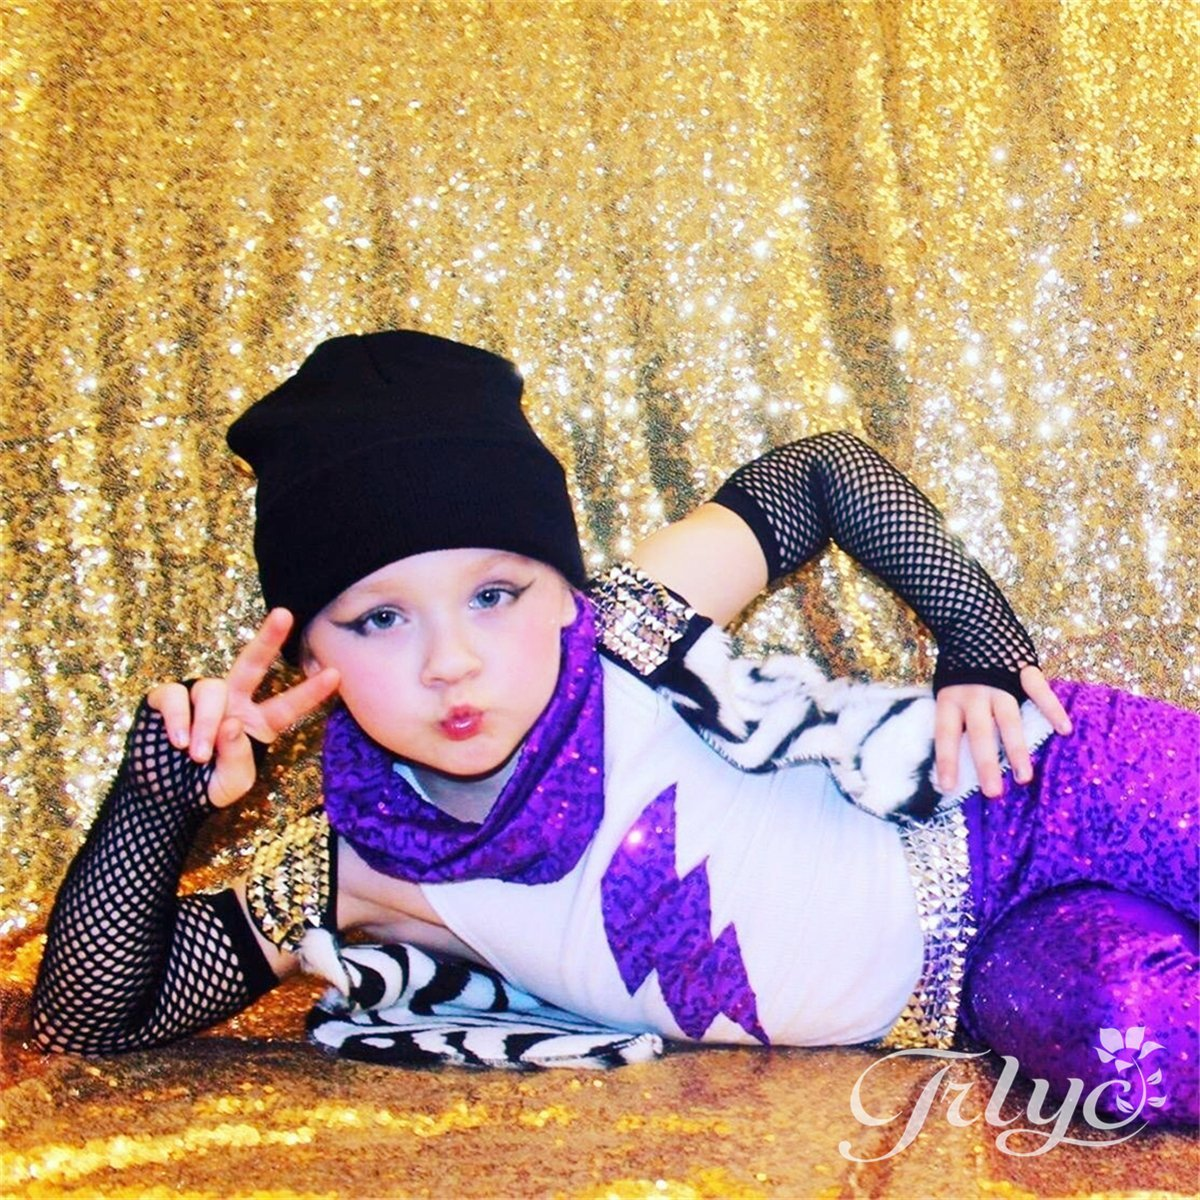 TRLYC Sequin backdrops, Sequin Photo Booth Backdrop, Party backdrops, Wedding backdrops, Sparkling backdrops, Christmas Decoration